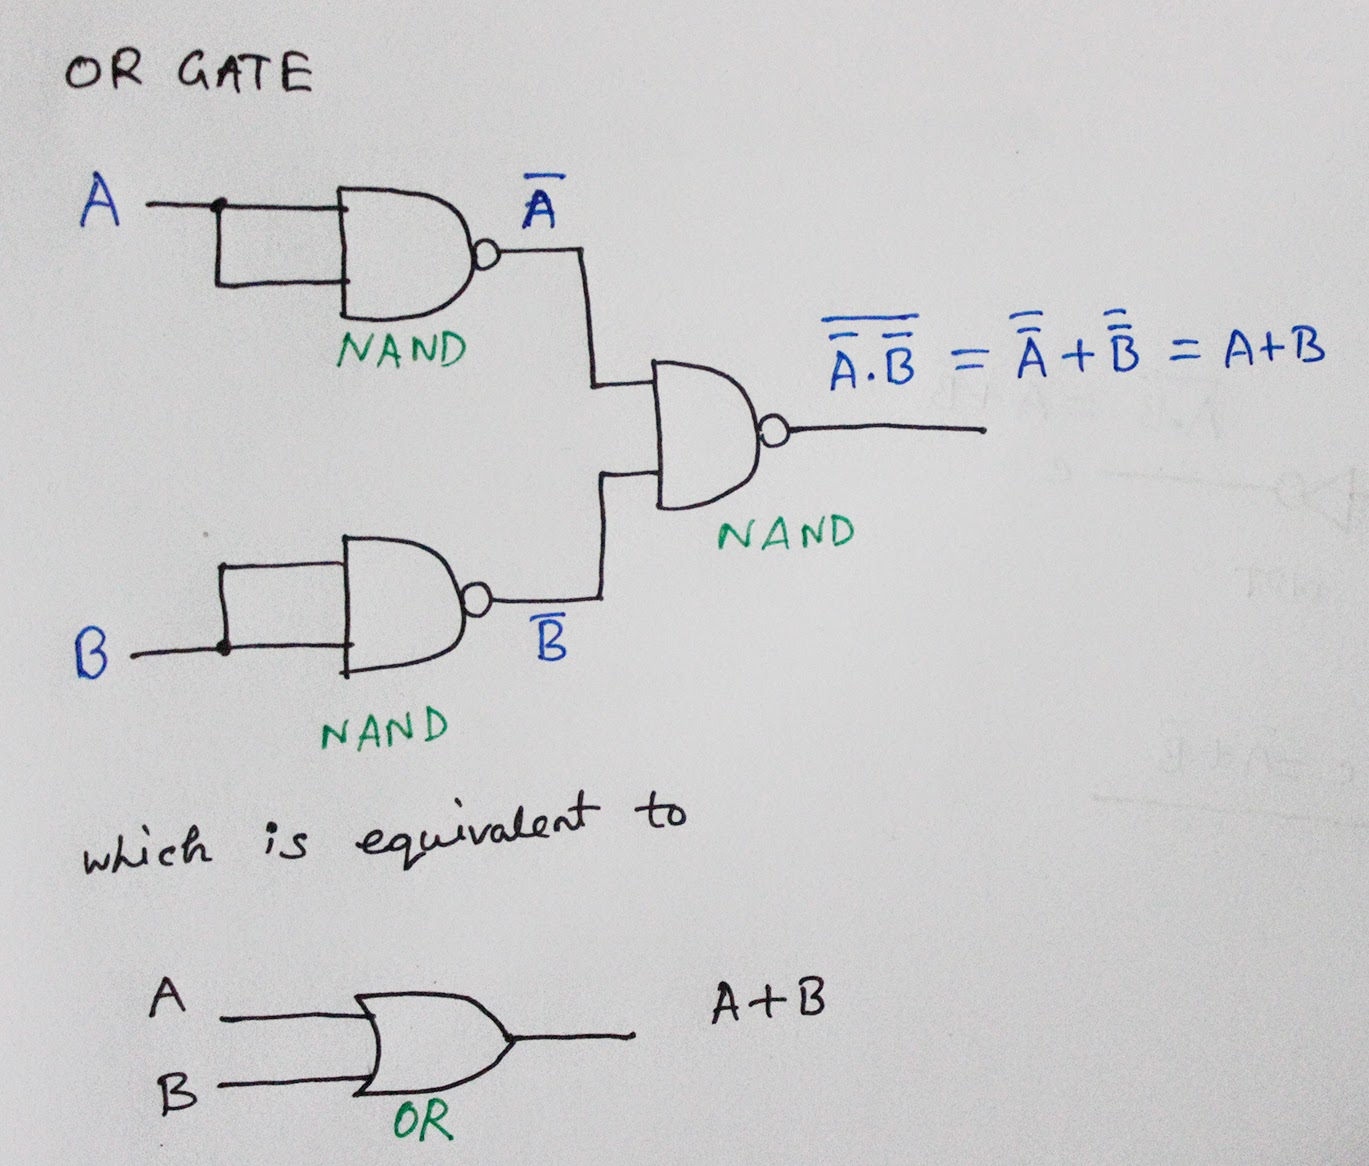 how to build an and gate only using nand gates